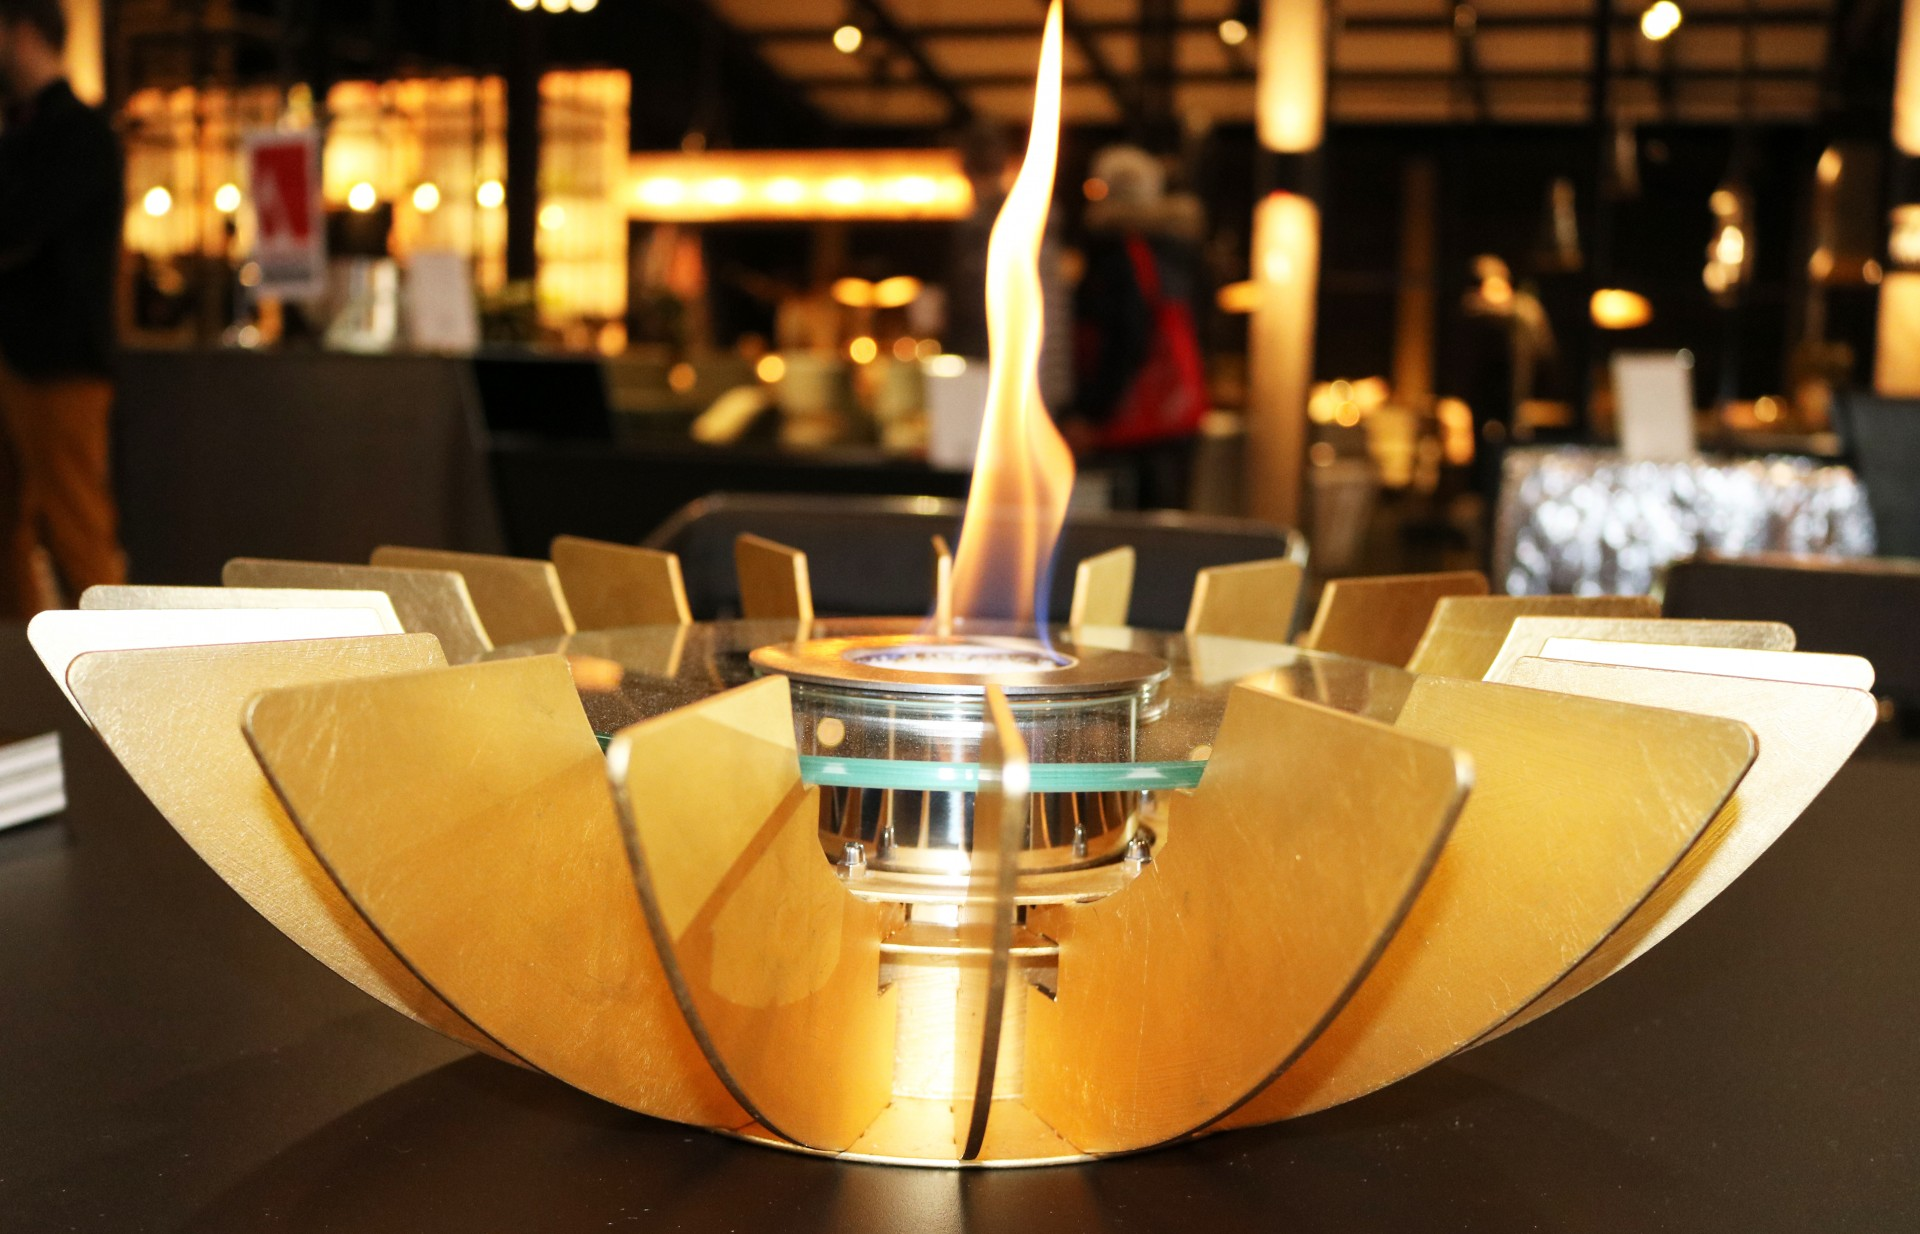 GlammFire glows with its own light in the City of Lights